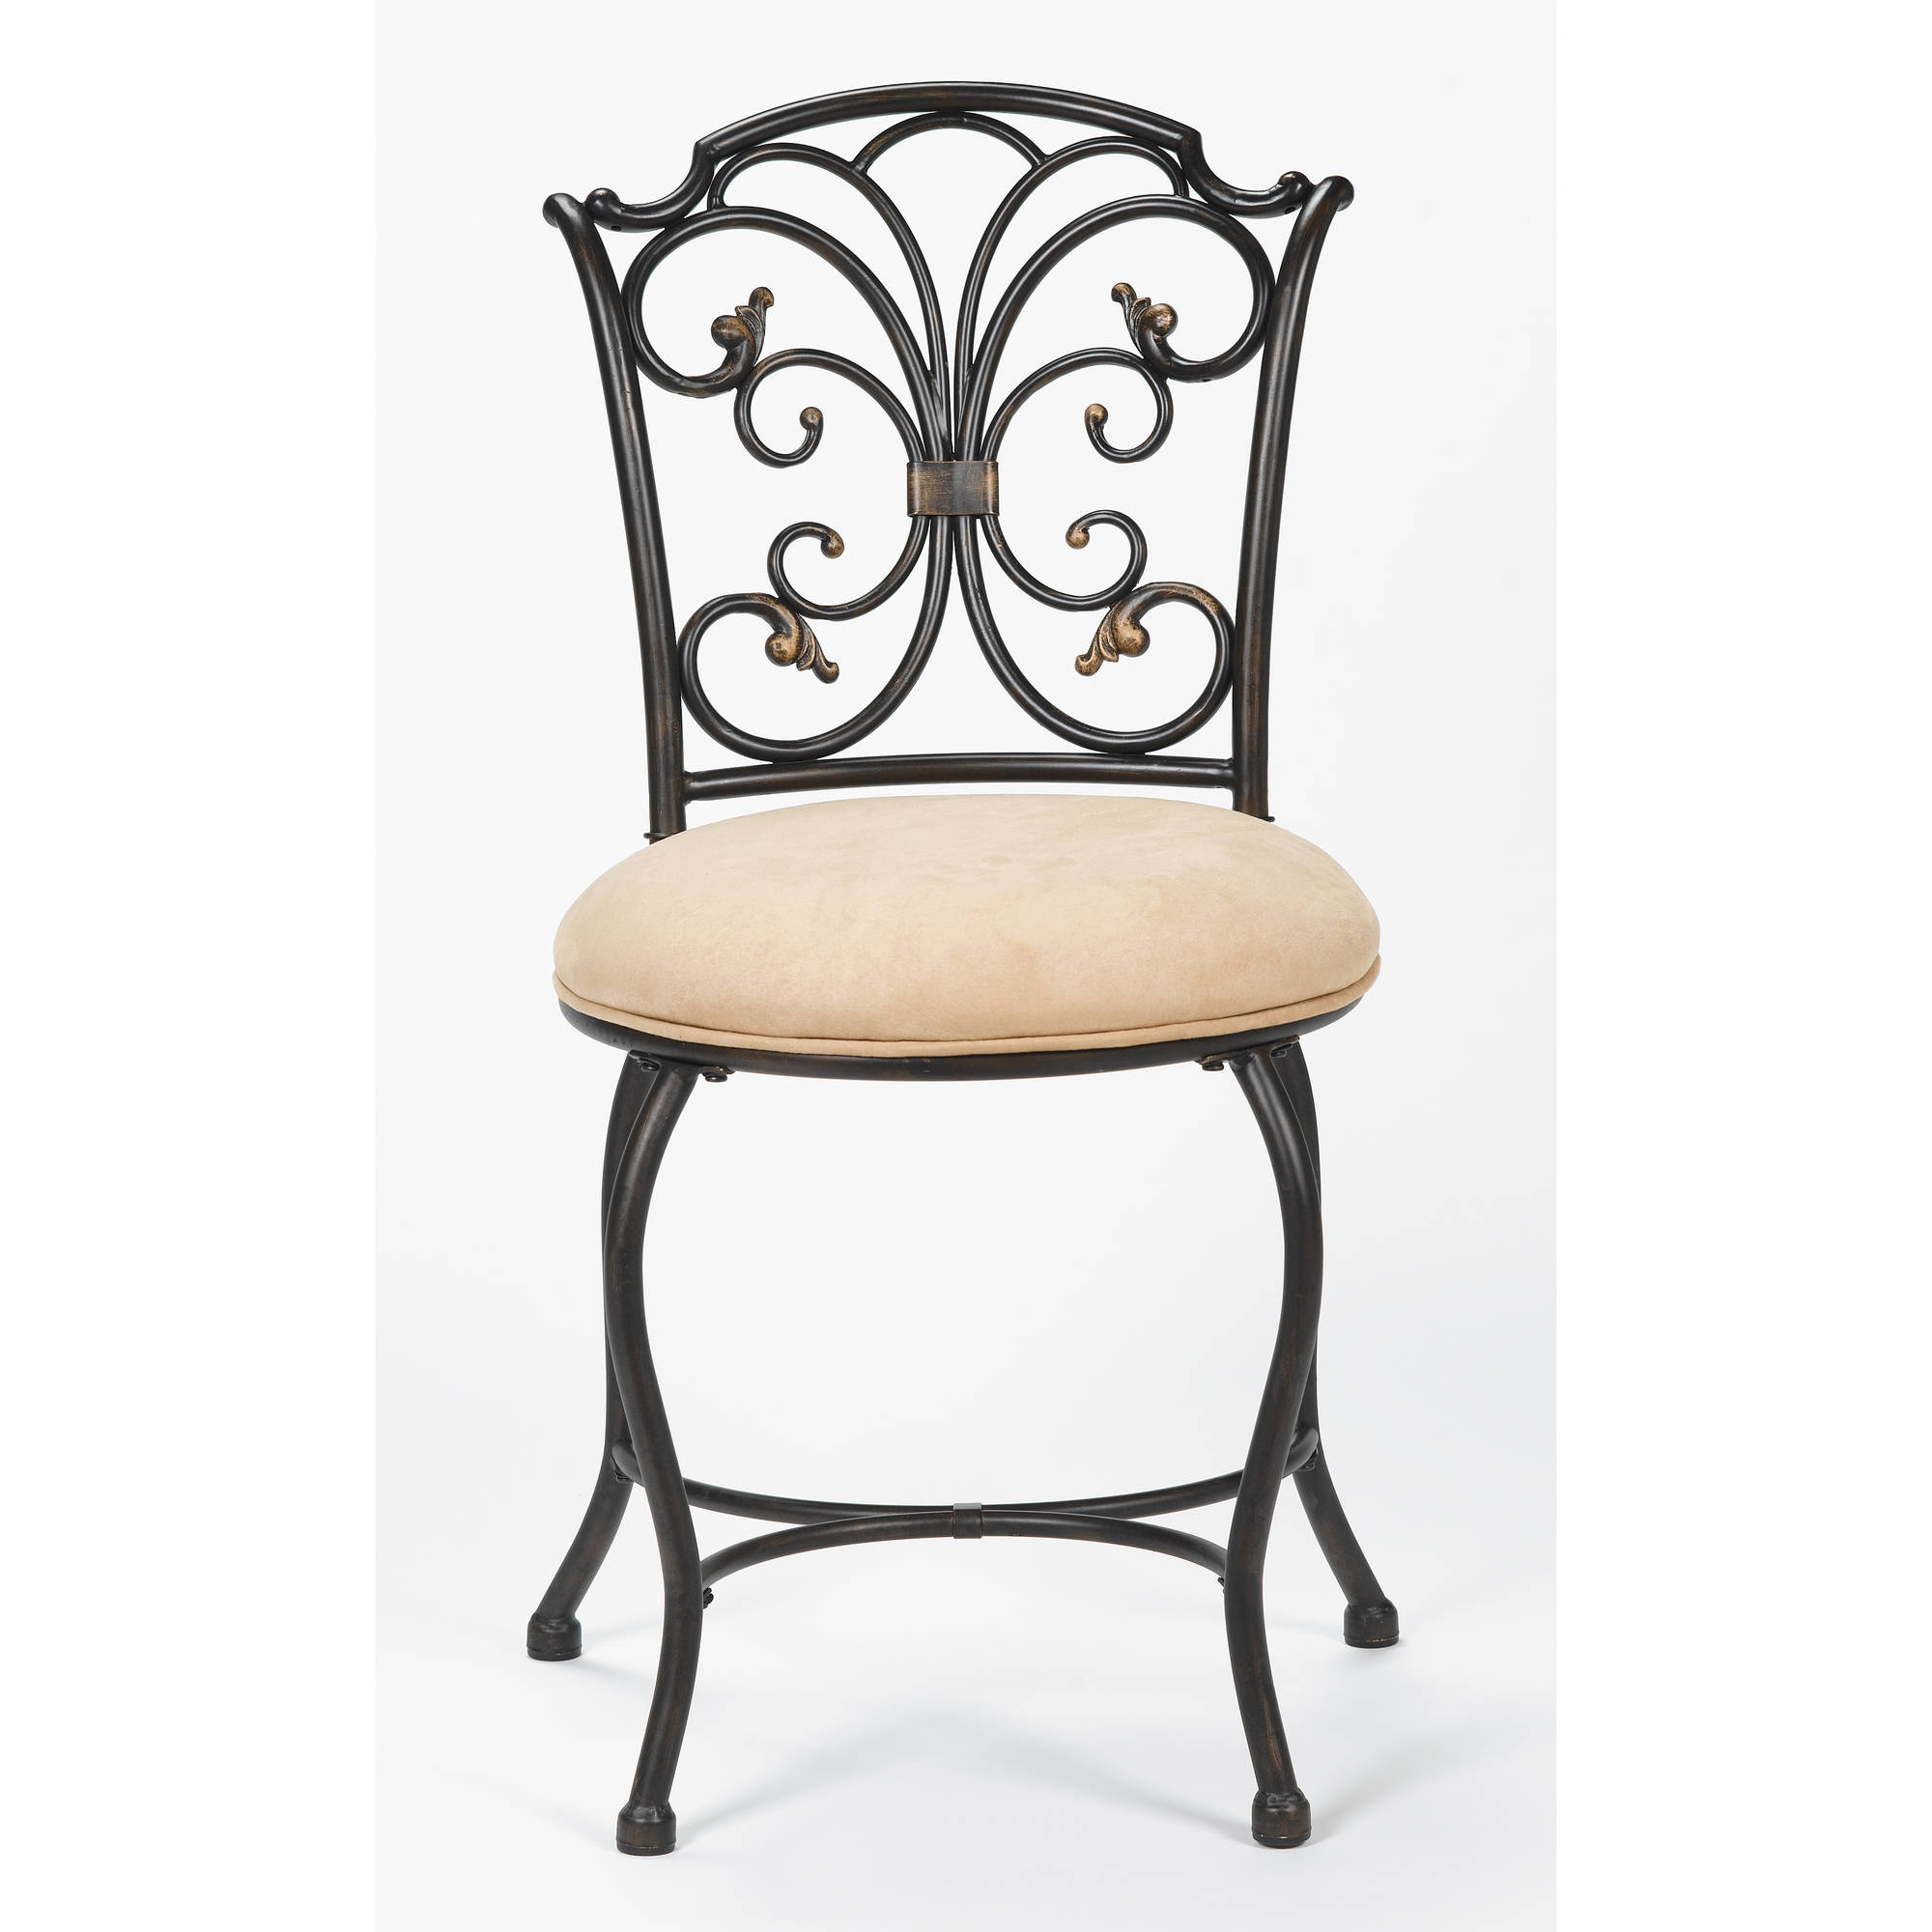 upholstered your bathroom for decor wooden stool elegant bedroom idea vanity stools round modern white chair designs tufted